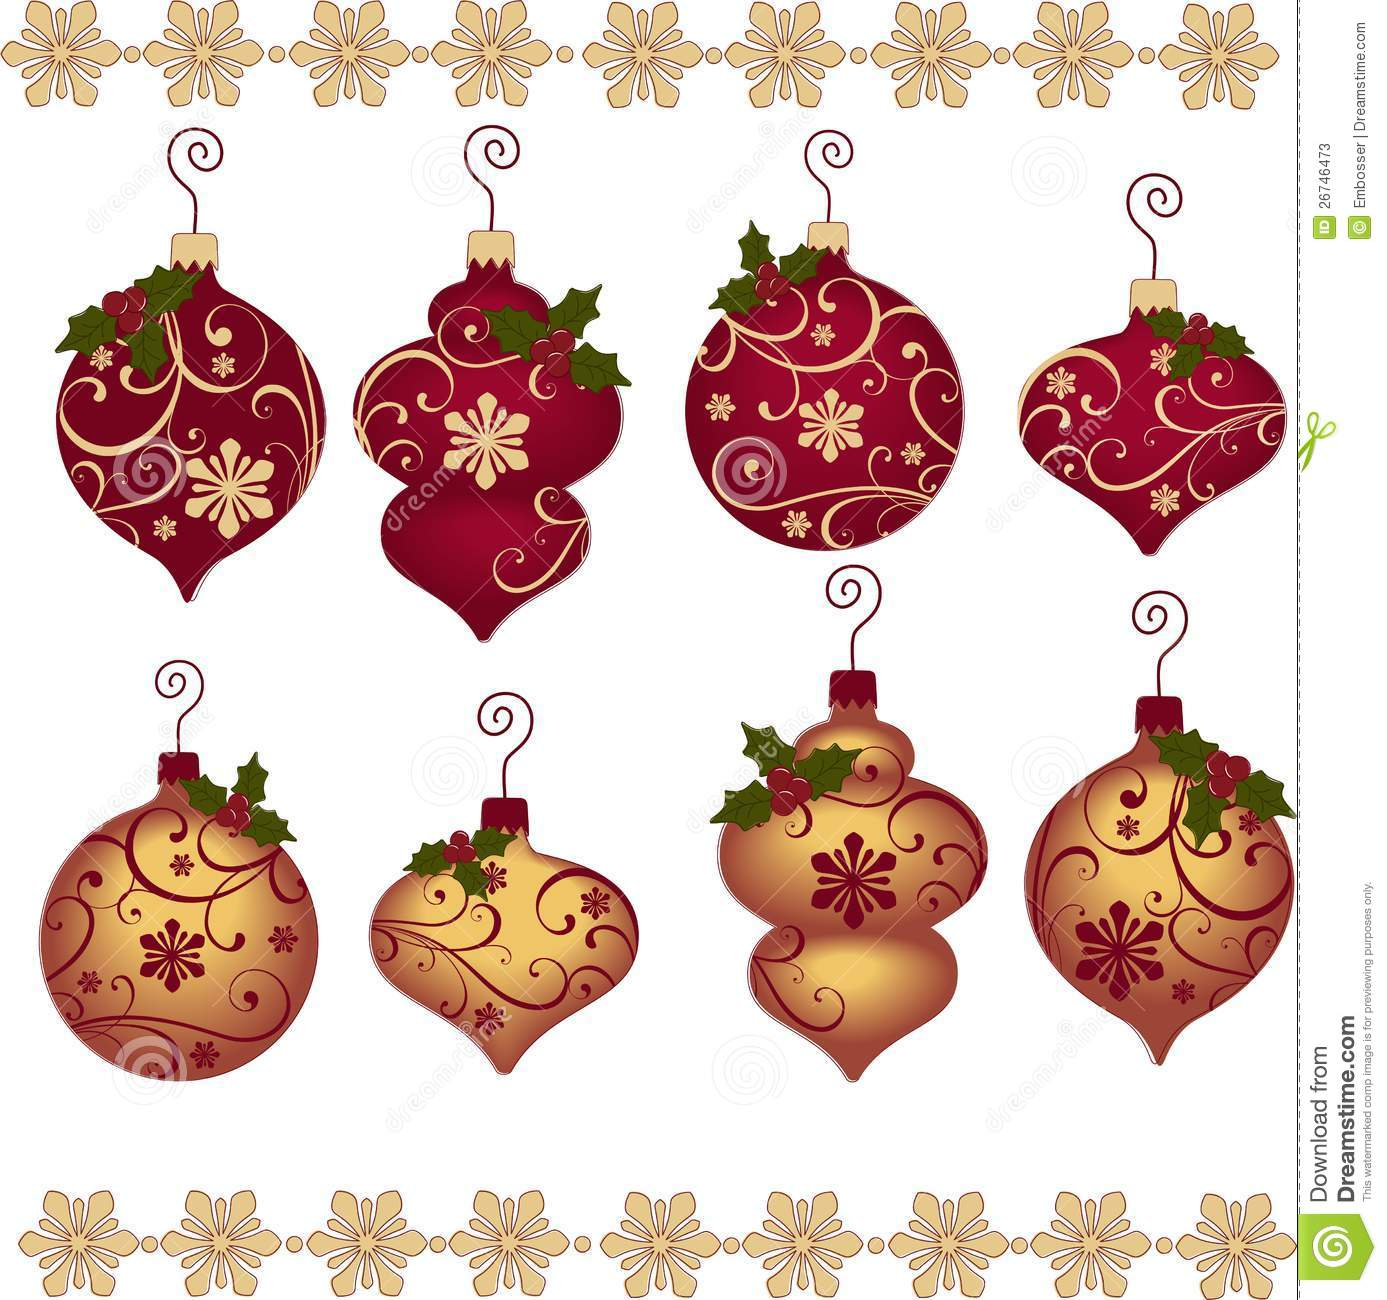 Collection For Scrapbook. Borders. Stock Vector - Image: 46891390